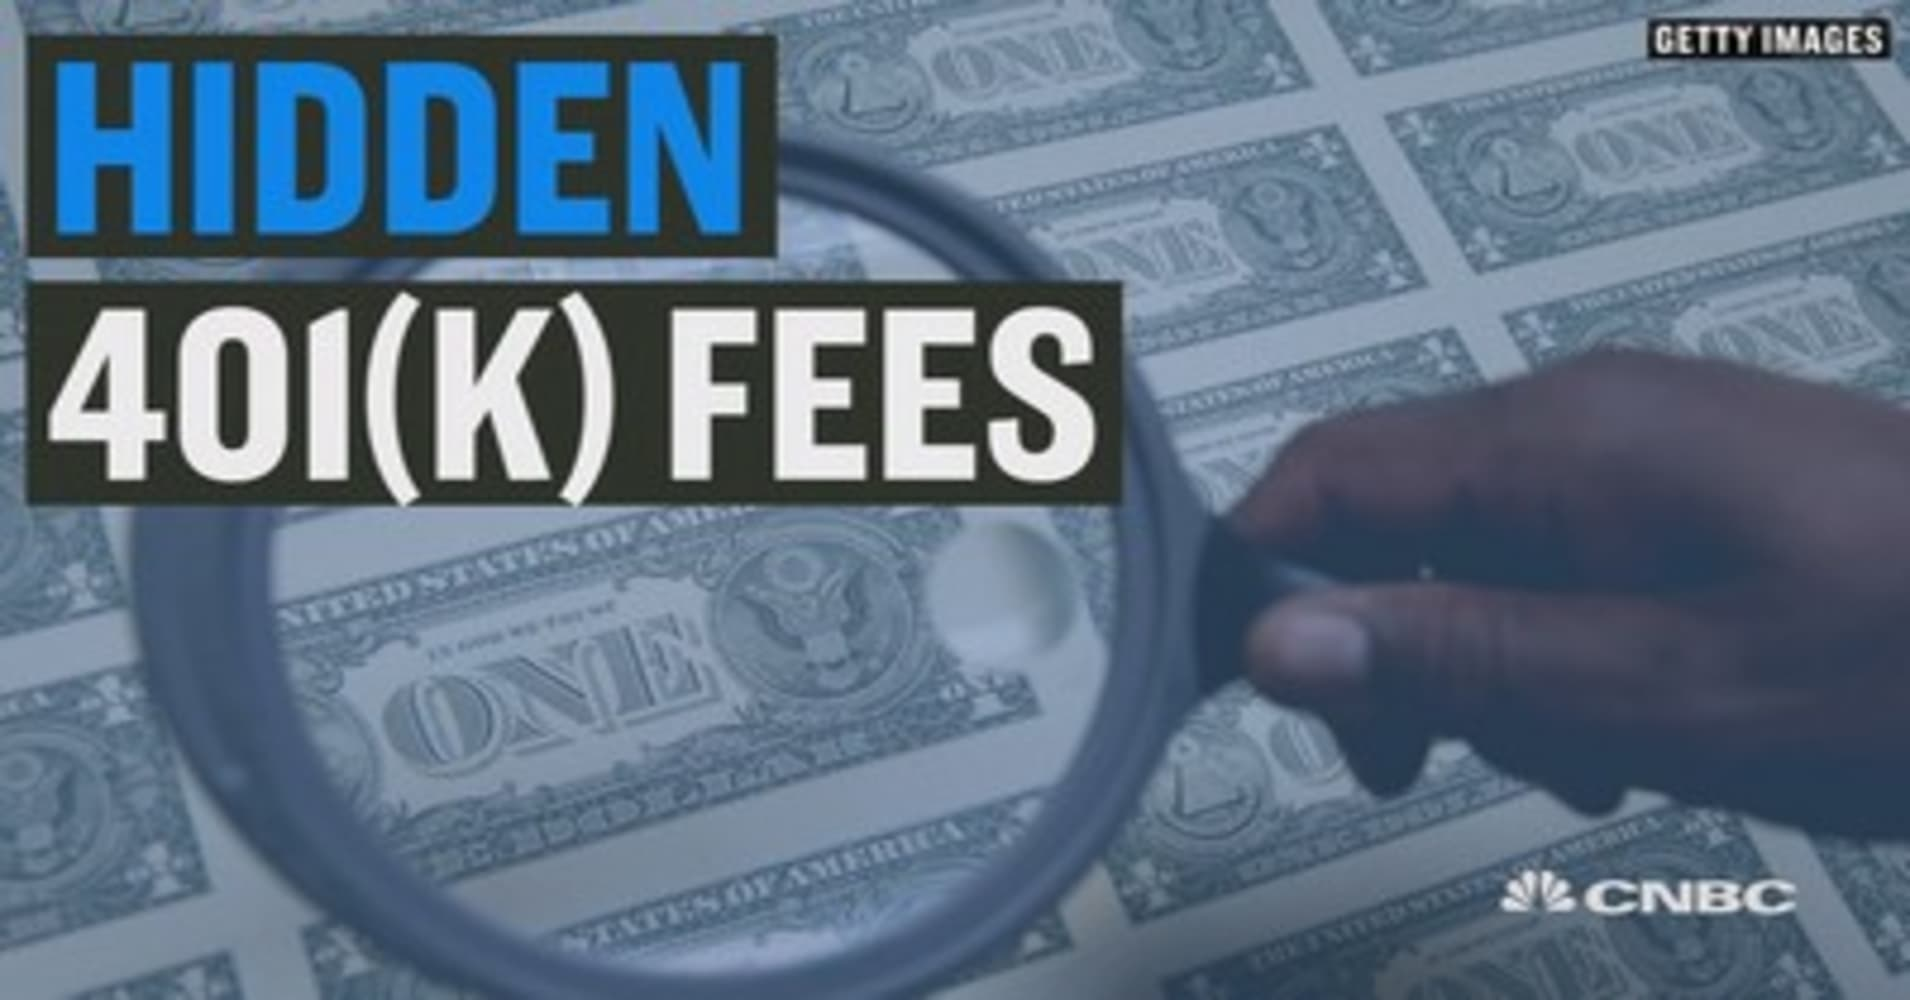 Tony Robbins: Hidden fees are killing your retirement plans